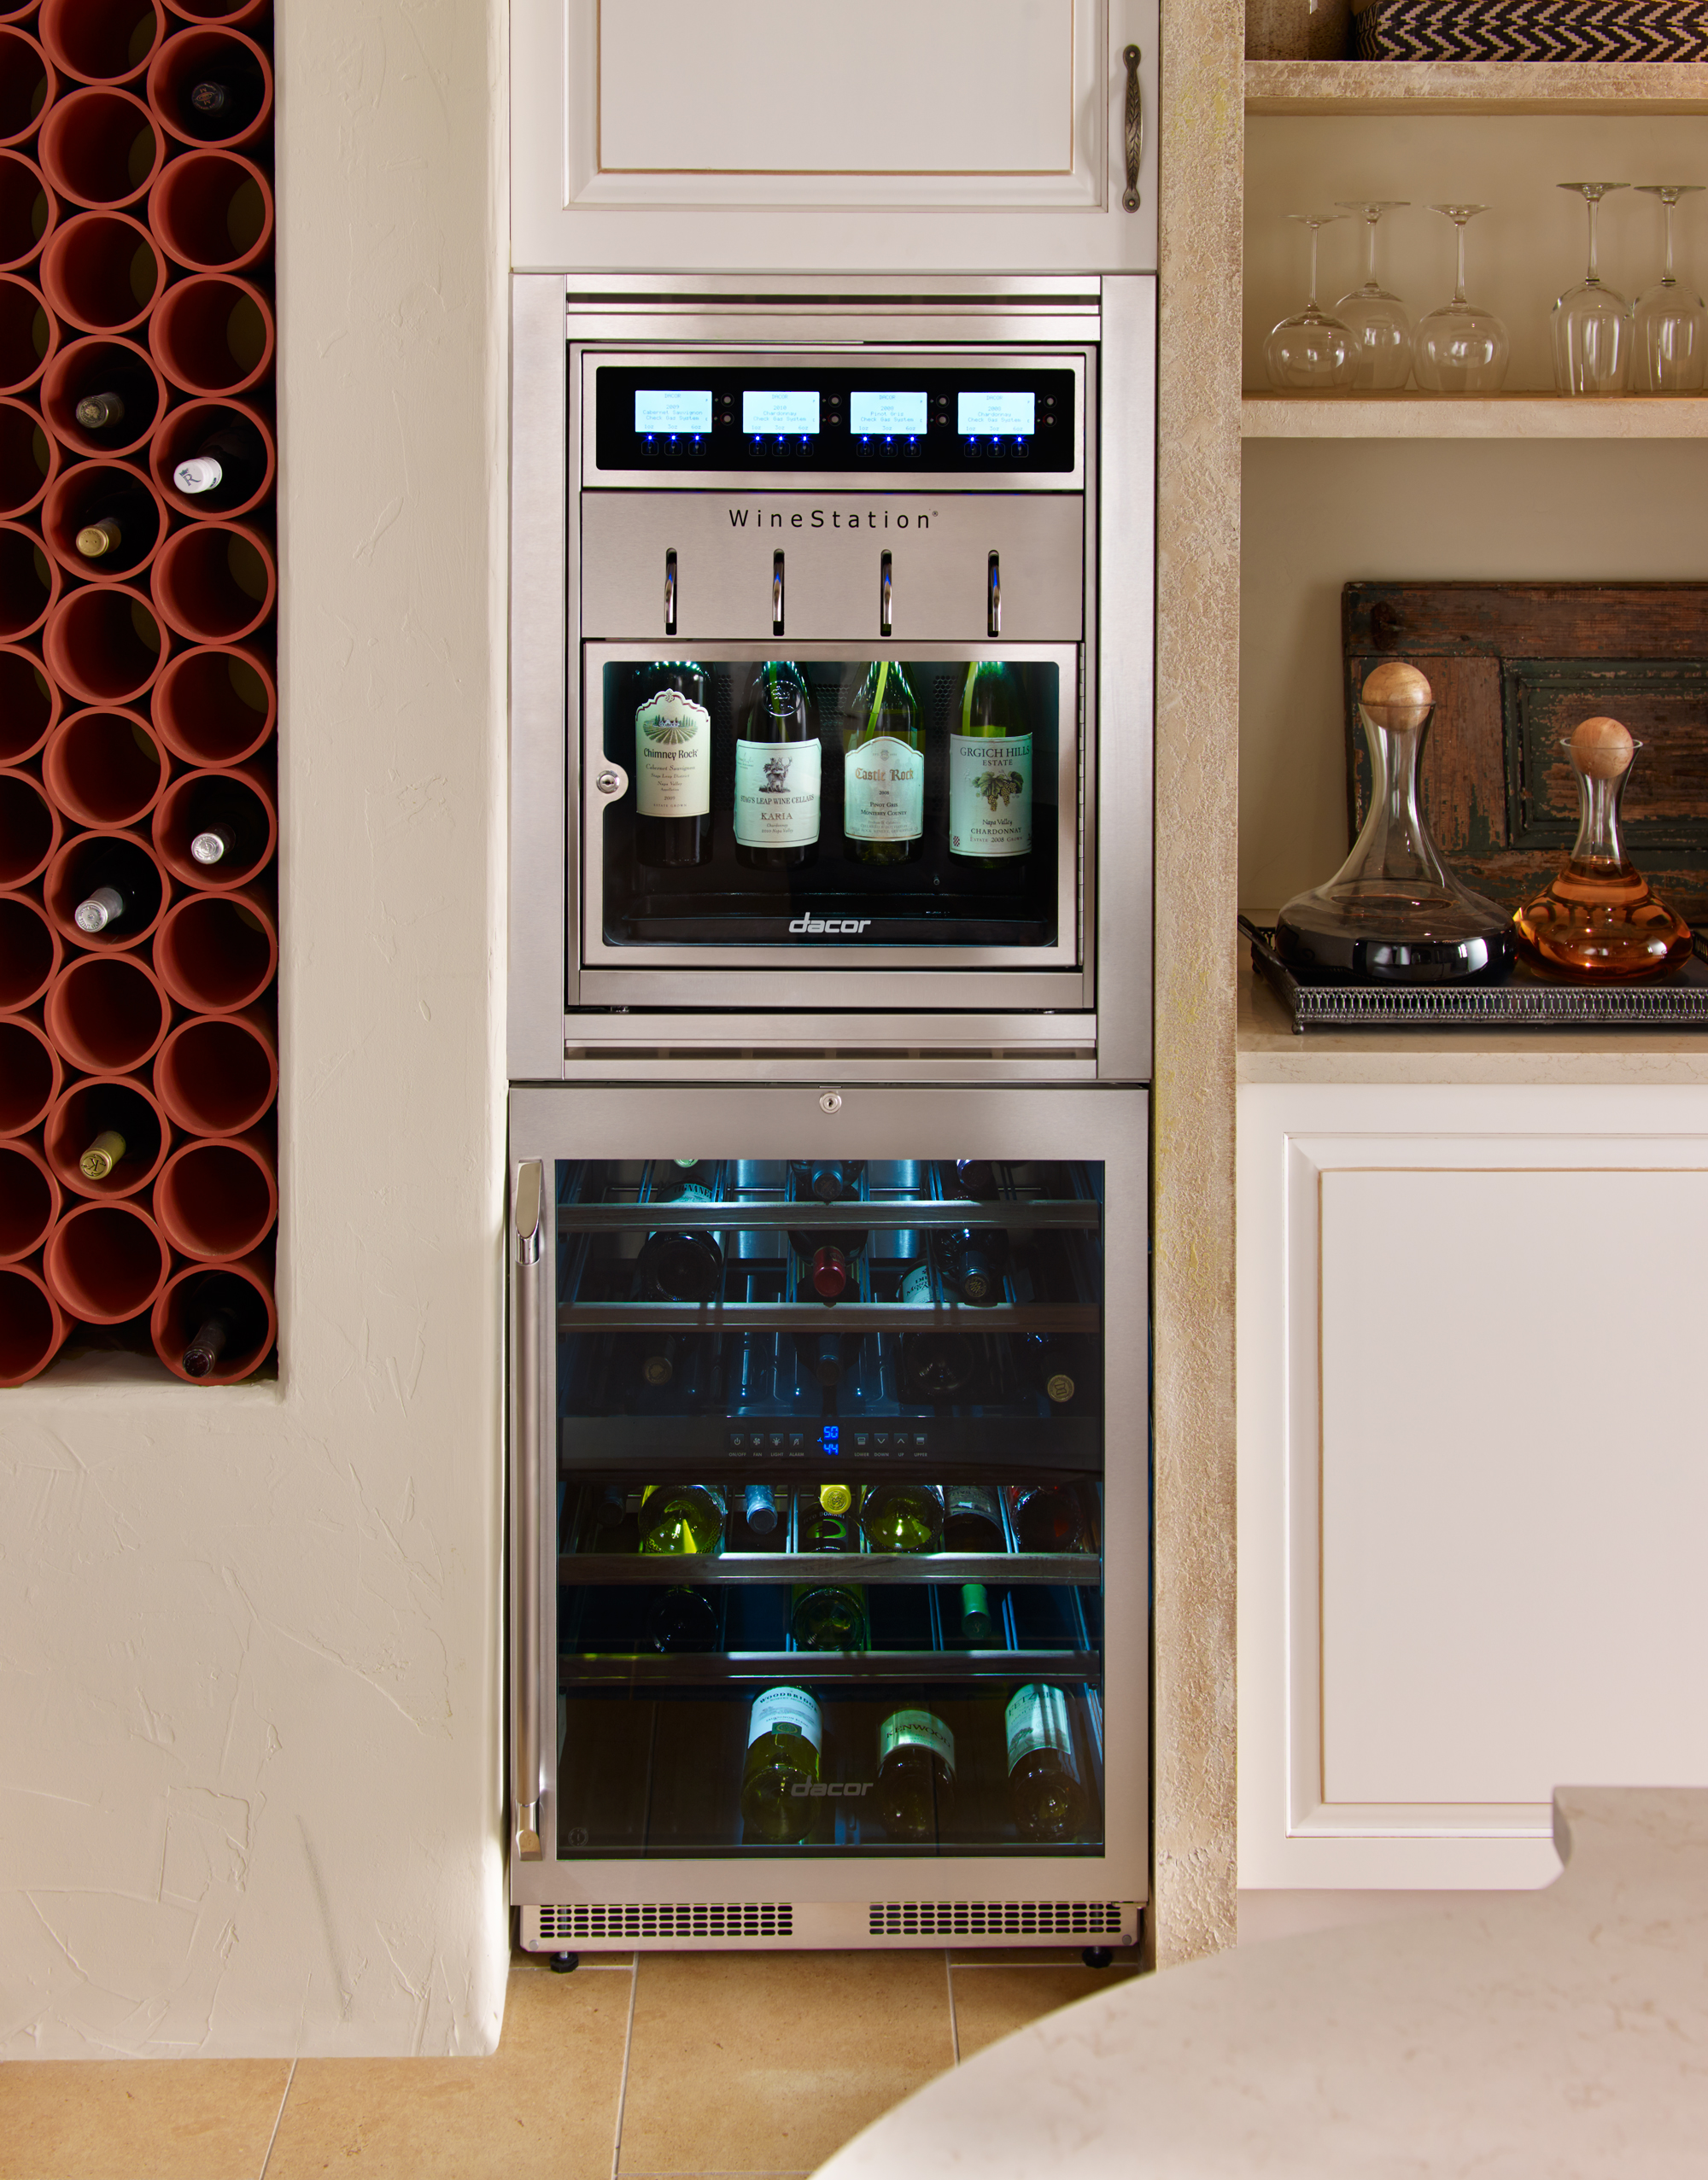 Dacor Brings Elegant Wine Experience To Your Home